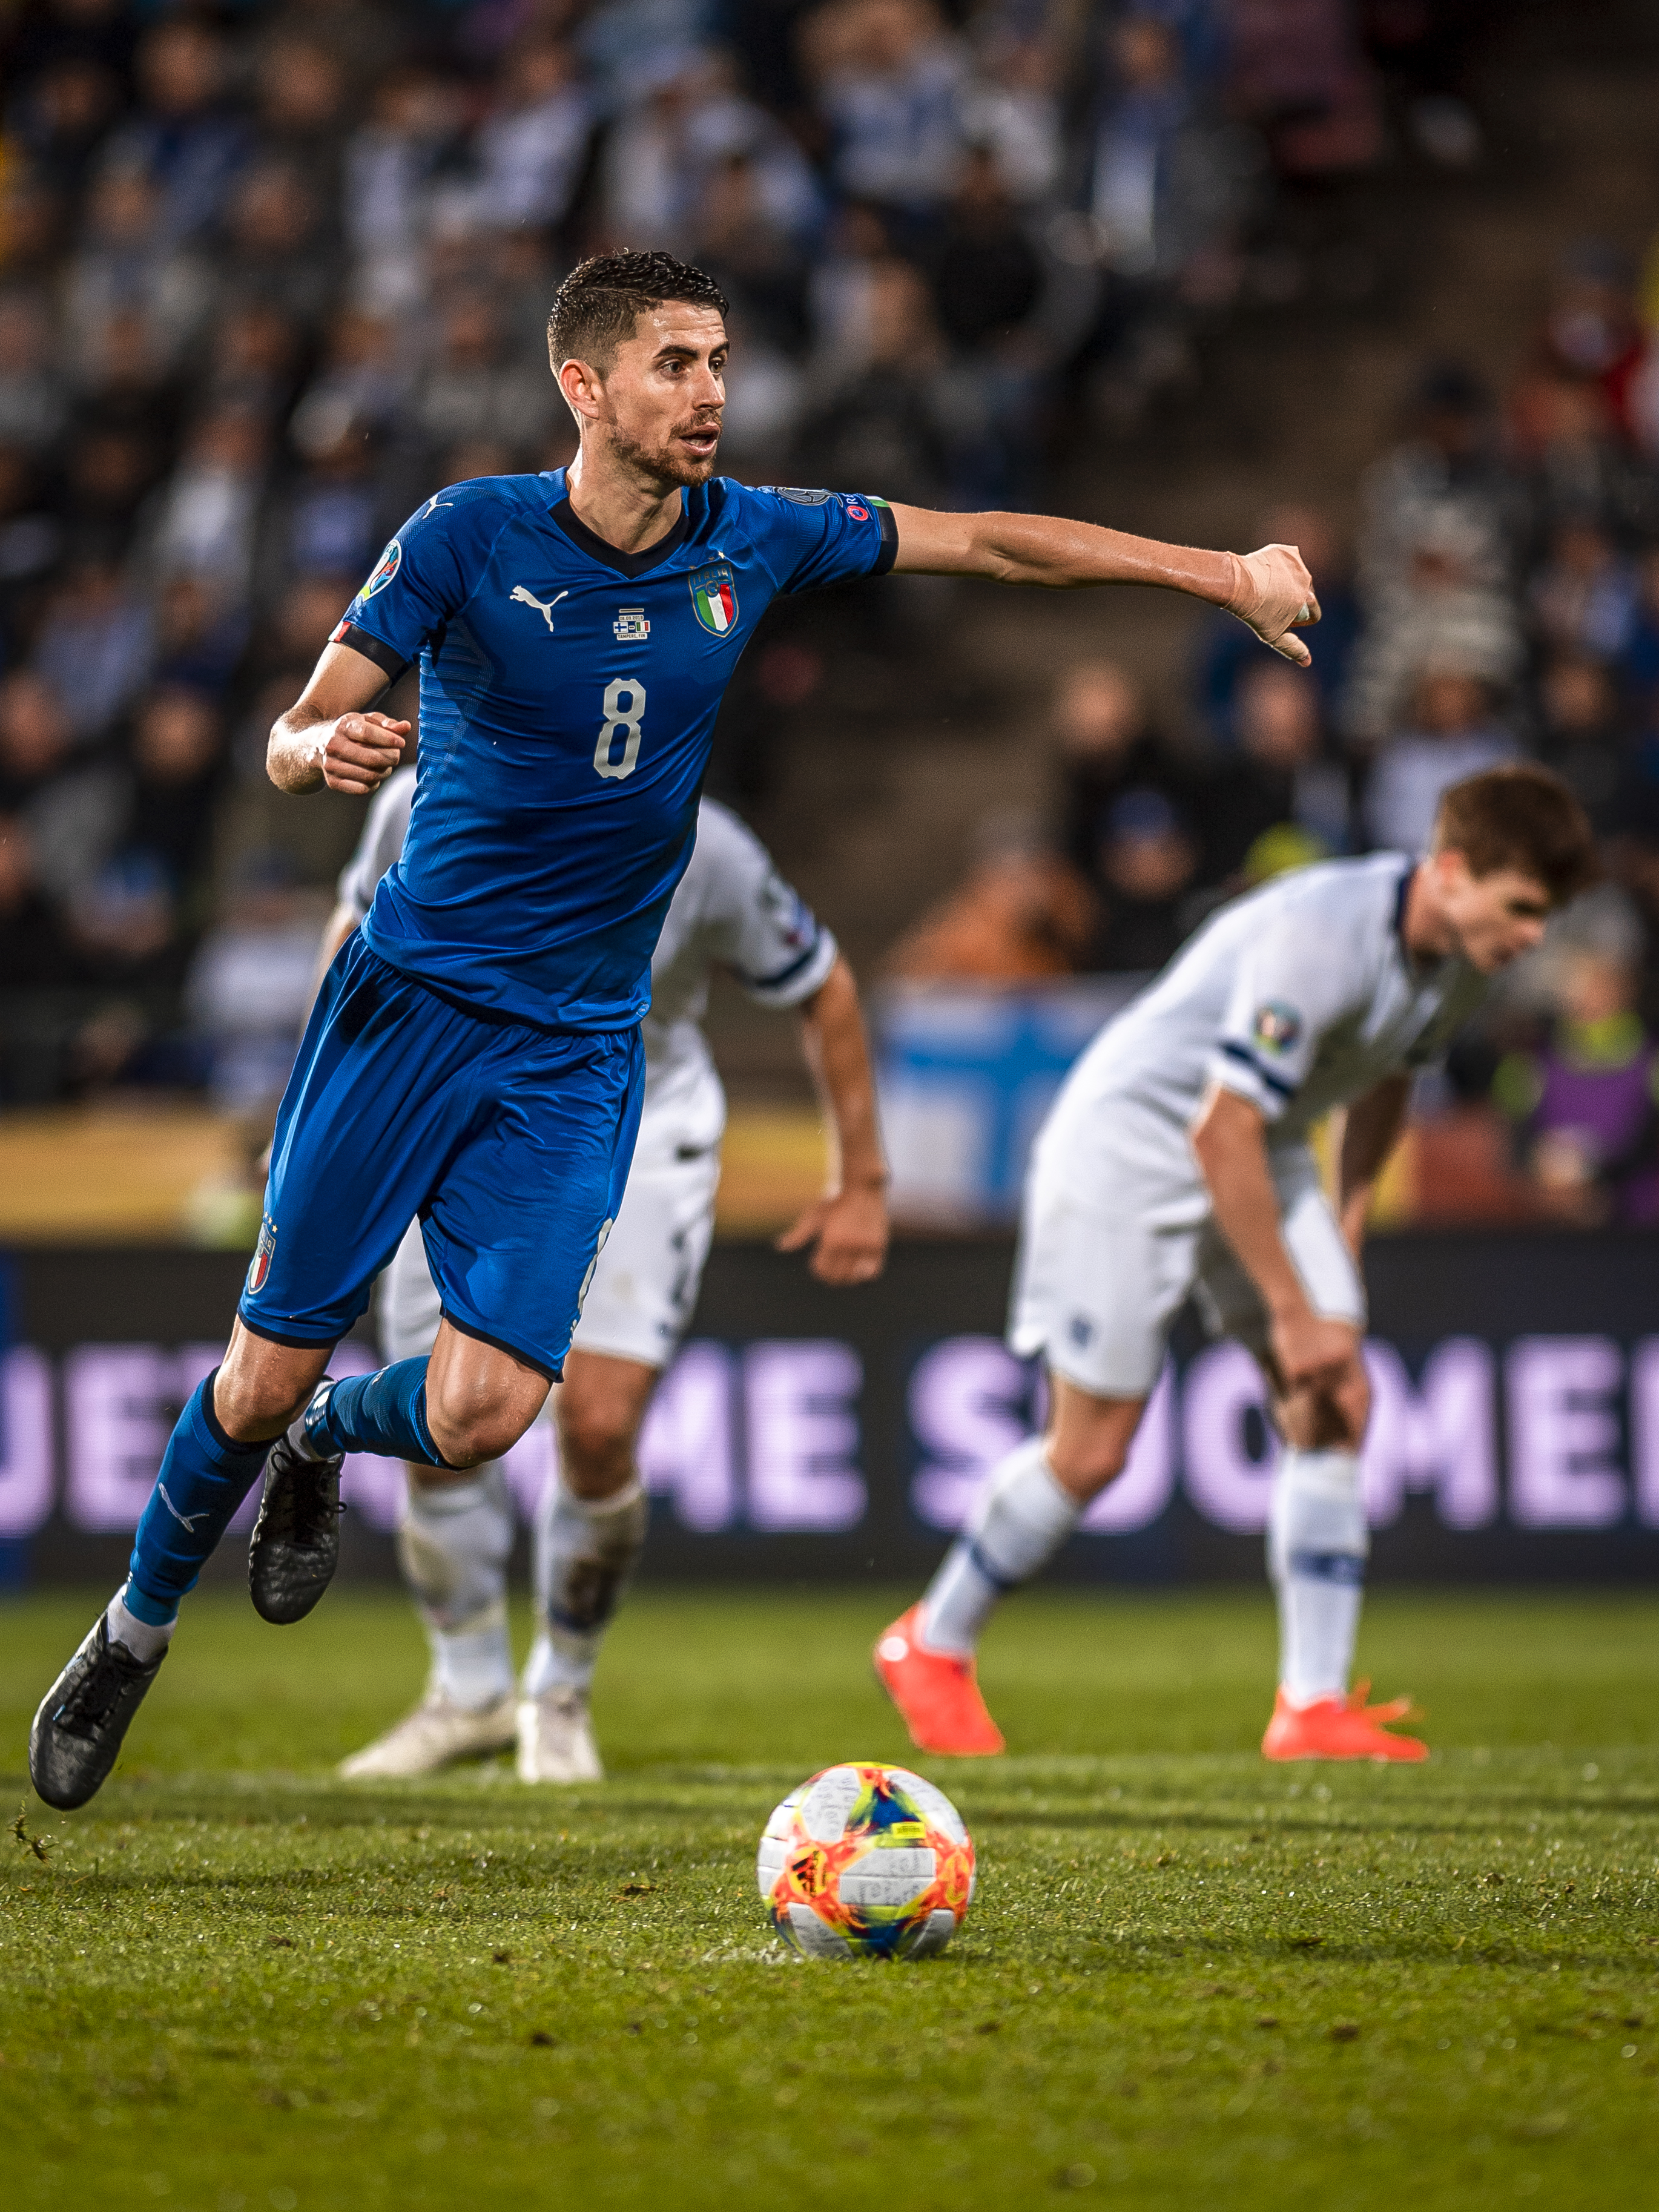 Jorginho happy with growth at Chelsea, hopes to stay for many more years